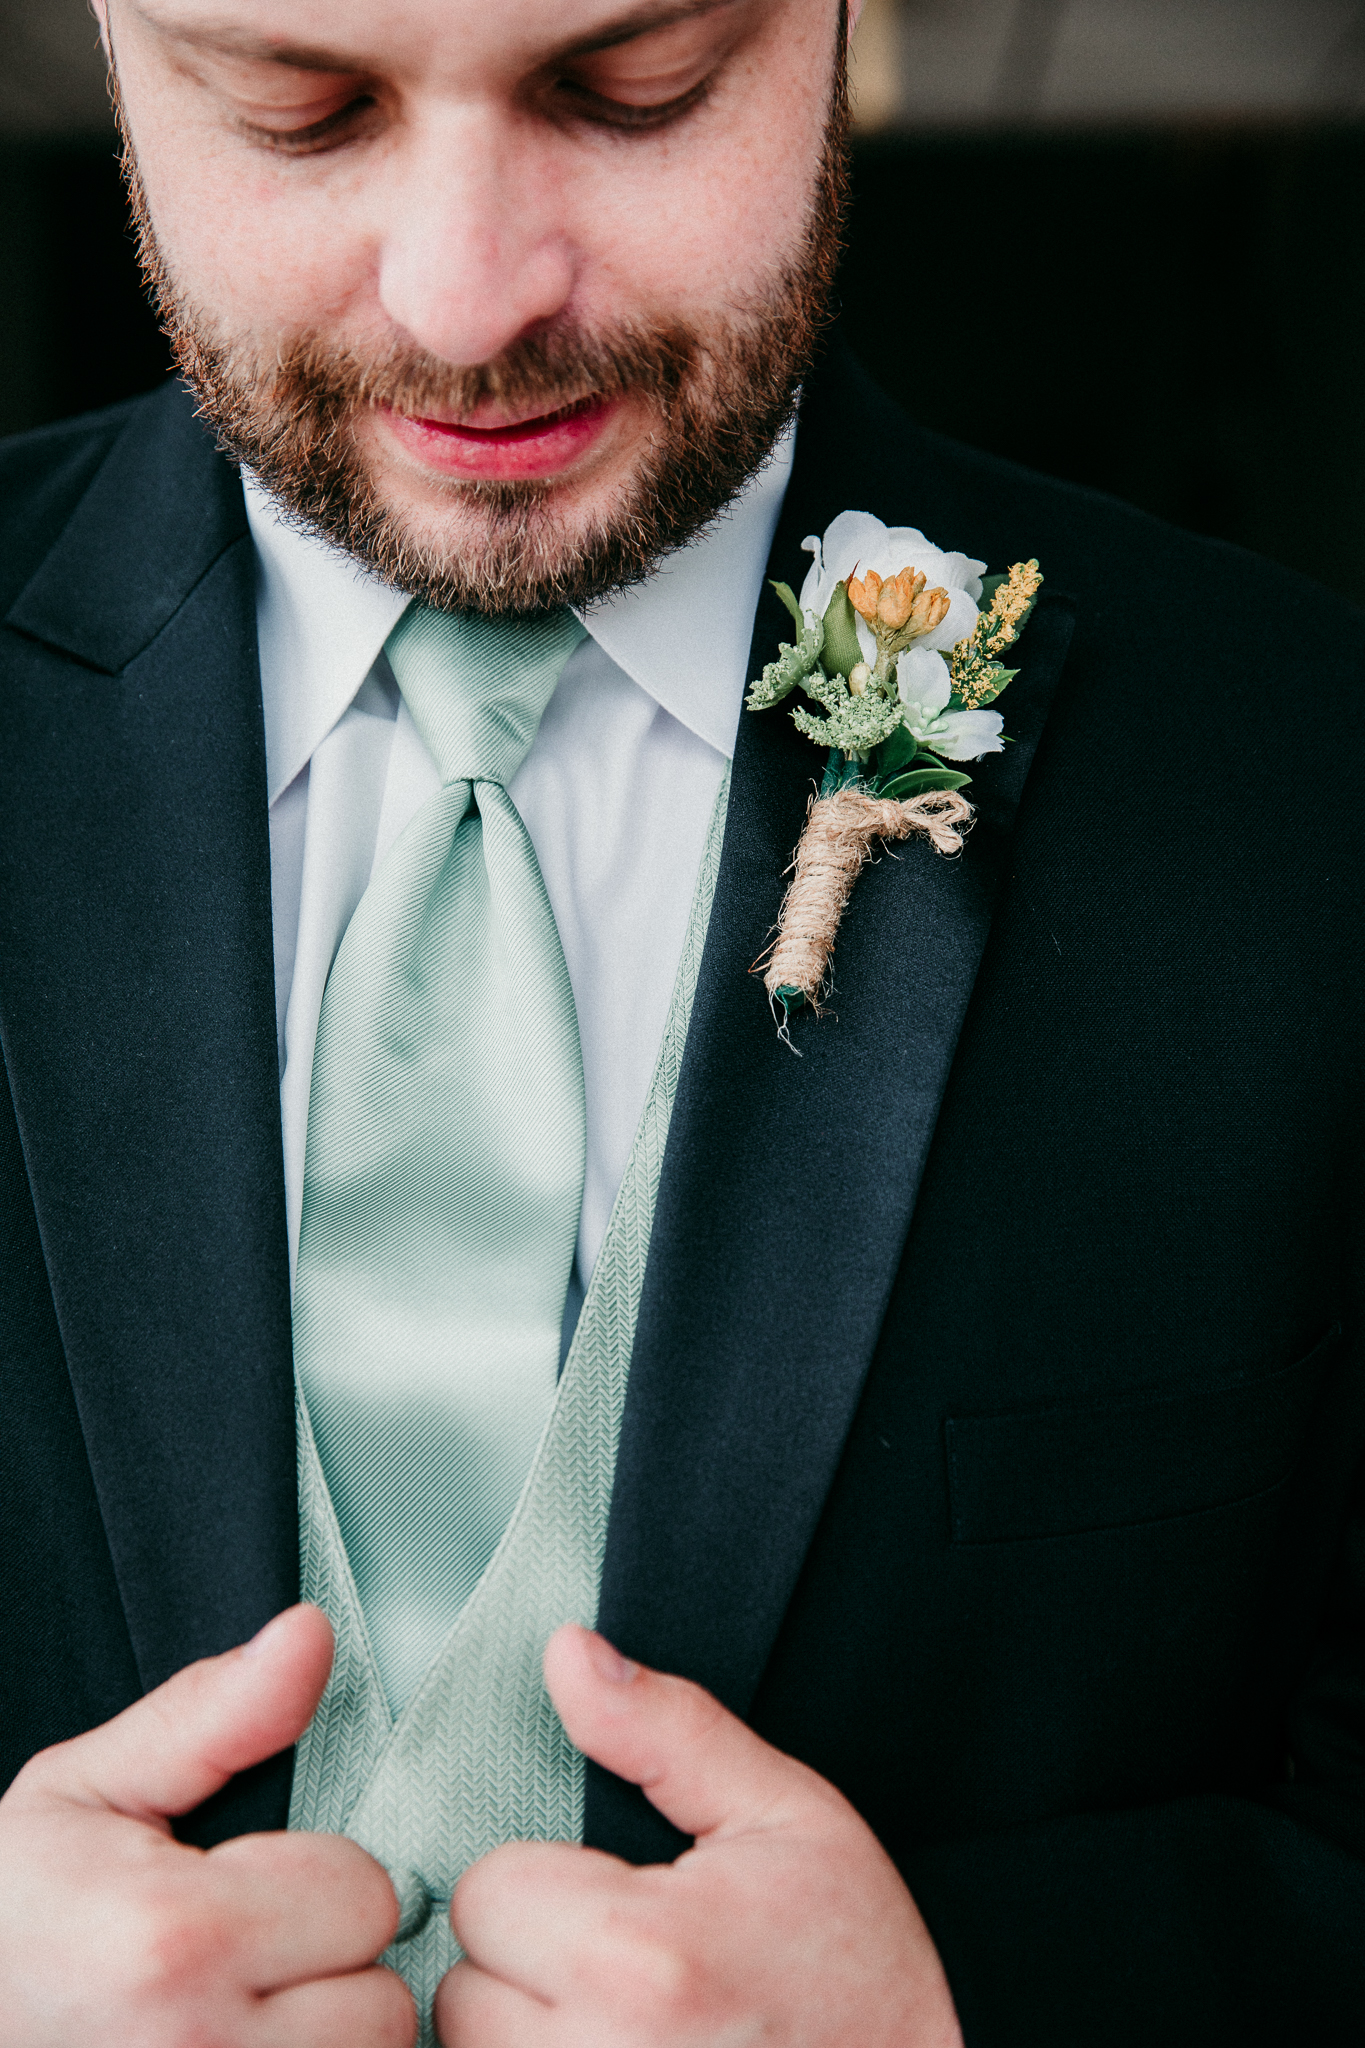 Wedding Photography in Lee's Summit by Merry Ohler (2)